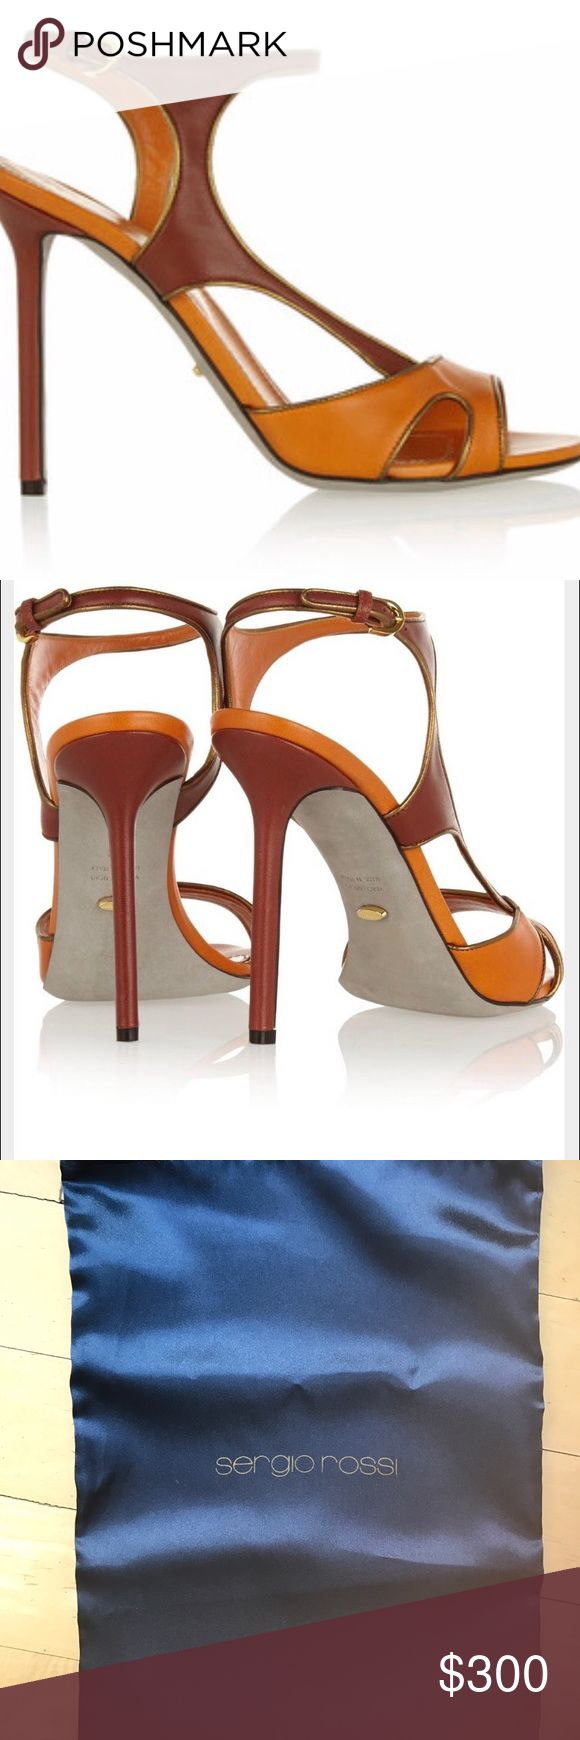 One day only! NWT Sergio Rossi Gleam Sandals NWT Sergio Rossi Gleam Sandals, size 9.5, Bright Orange Sergio Rossi Shoes Heels